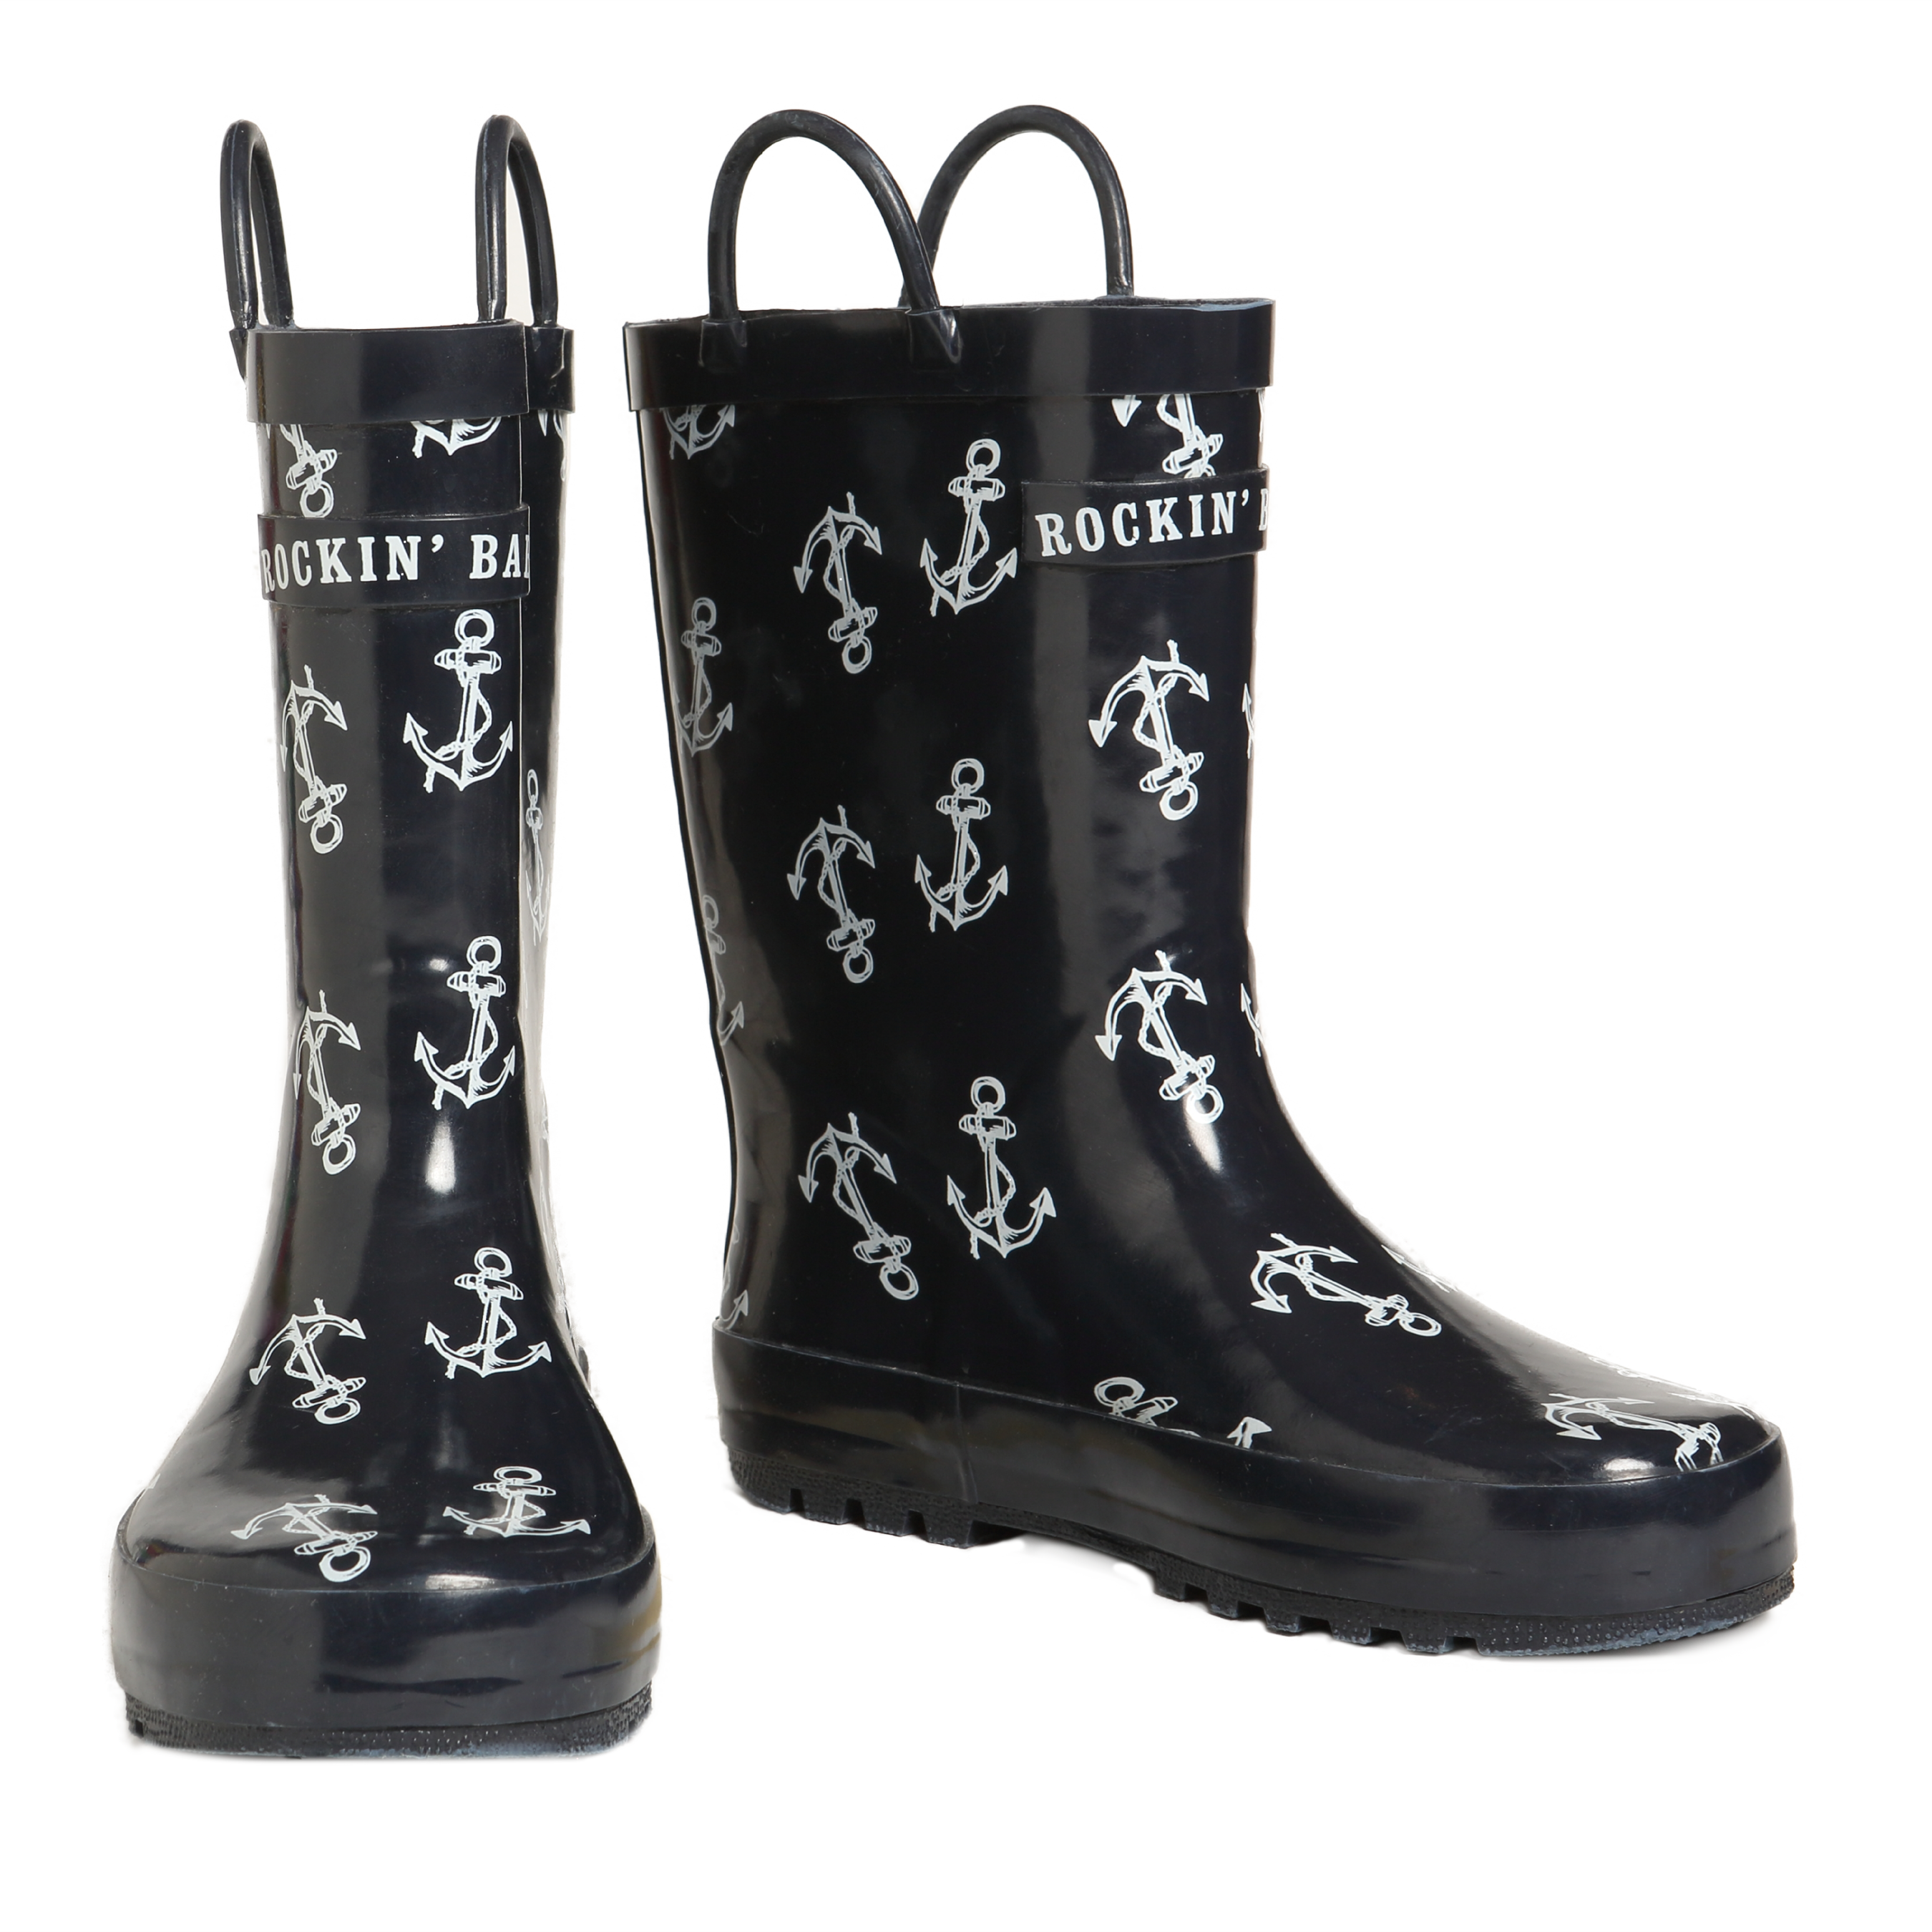 Rockin Baby Splashin Anchor Rainboots £12